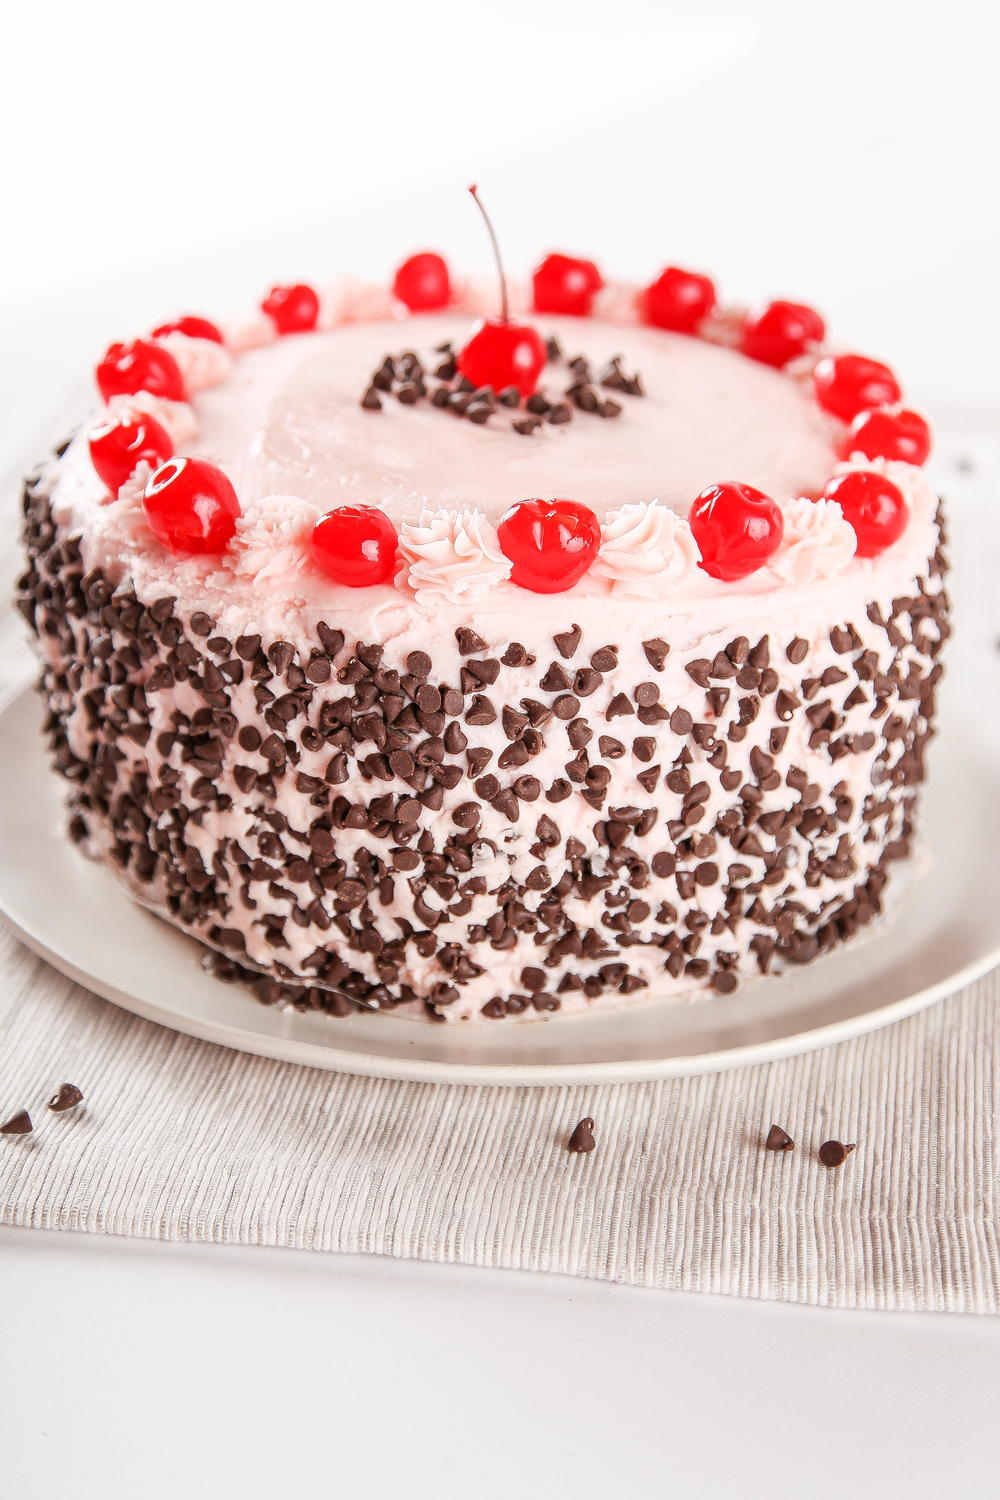 Cherry Chocolate Chip Cake Thebestdessertrecipes Com